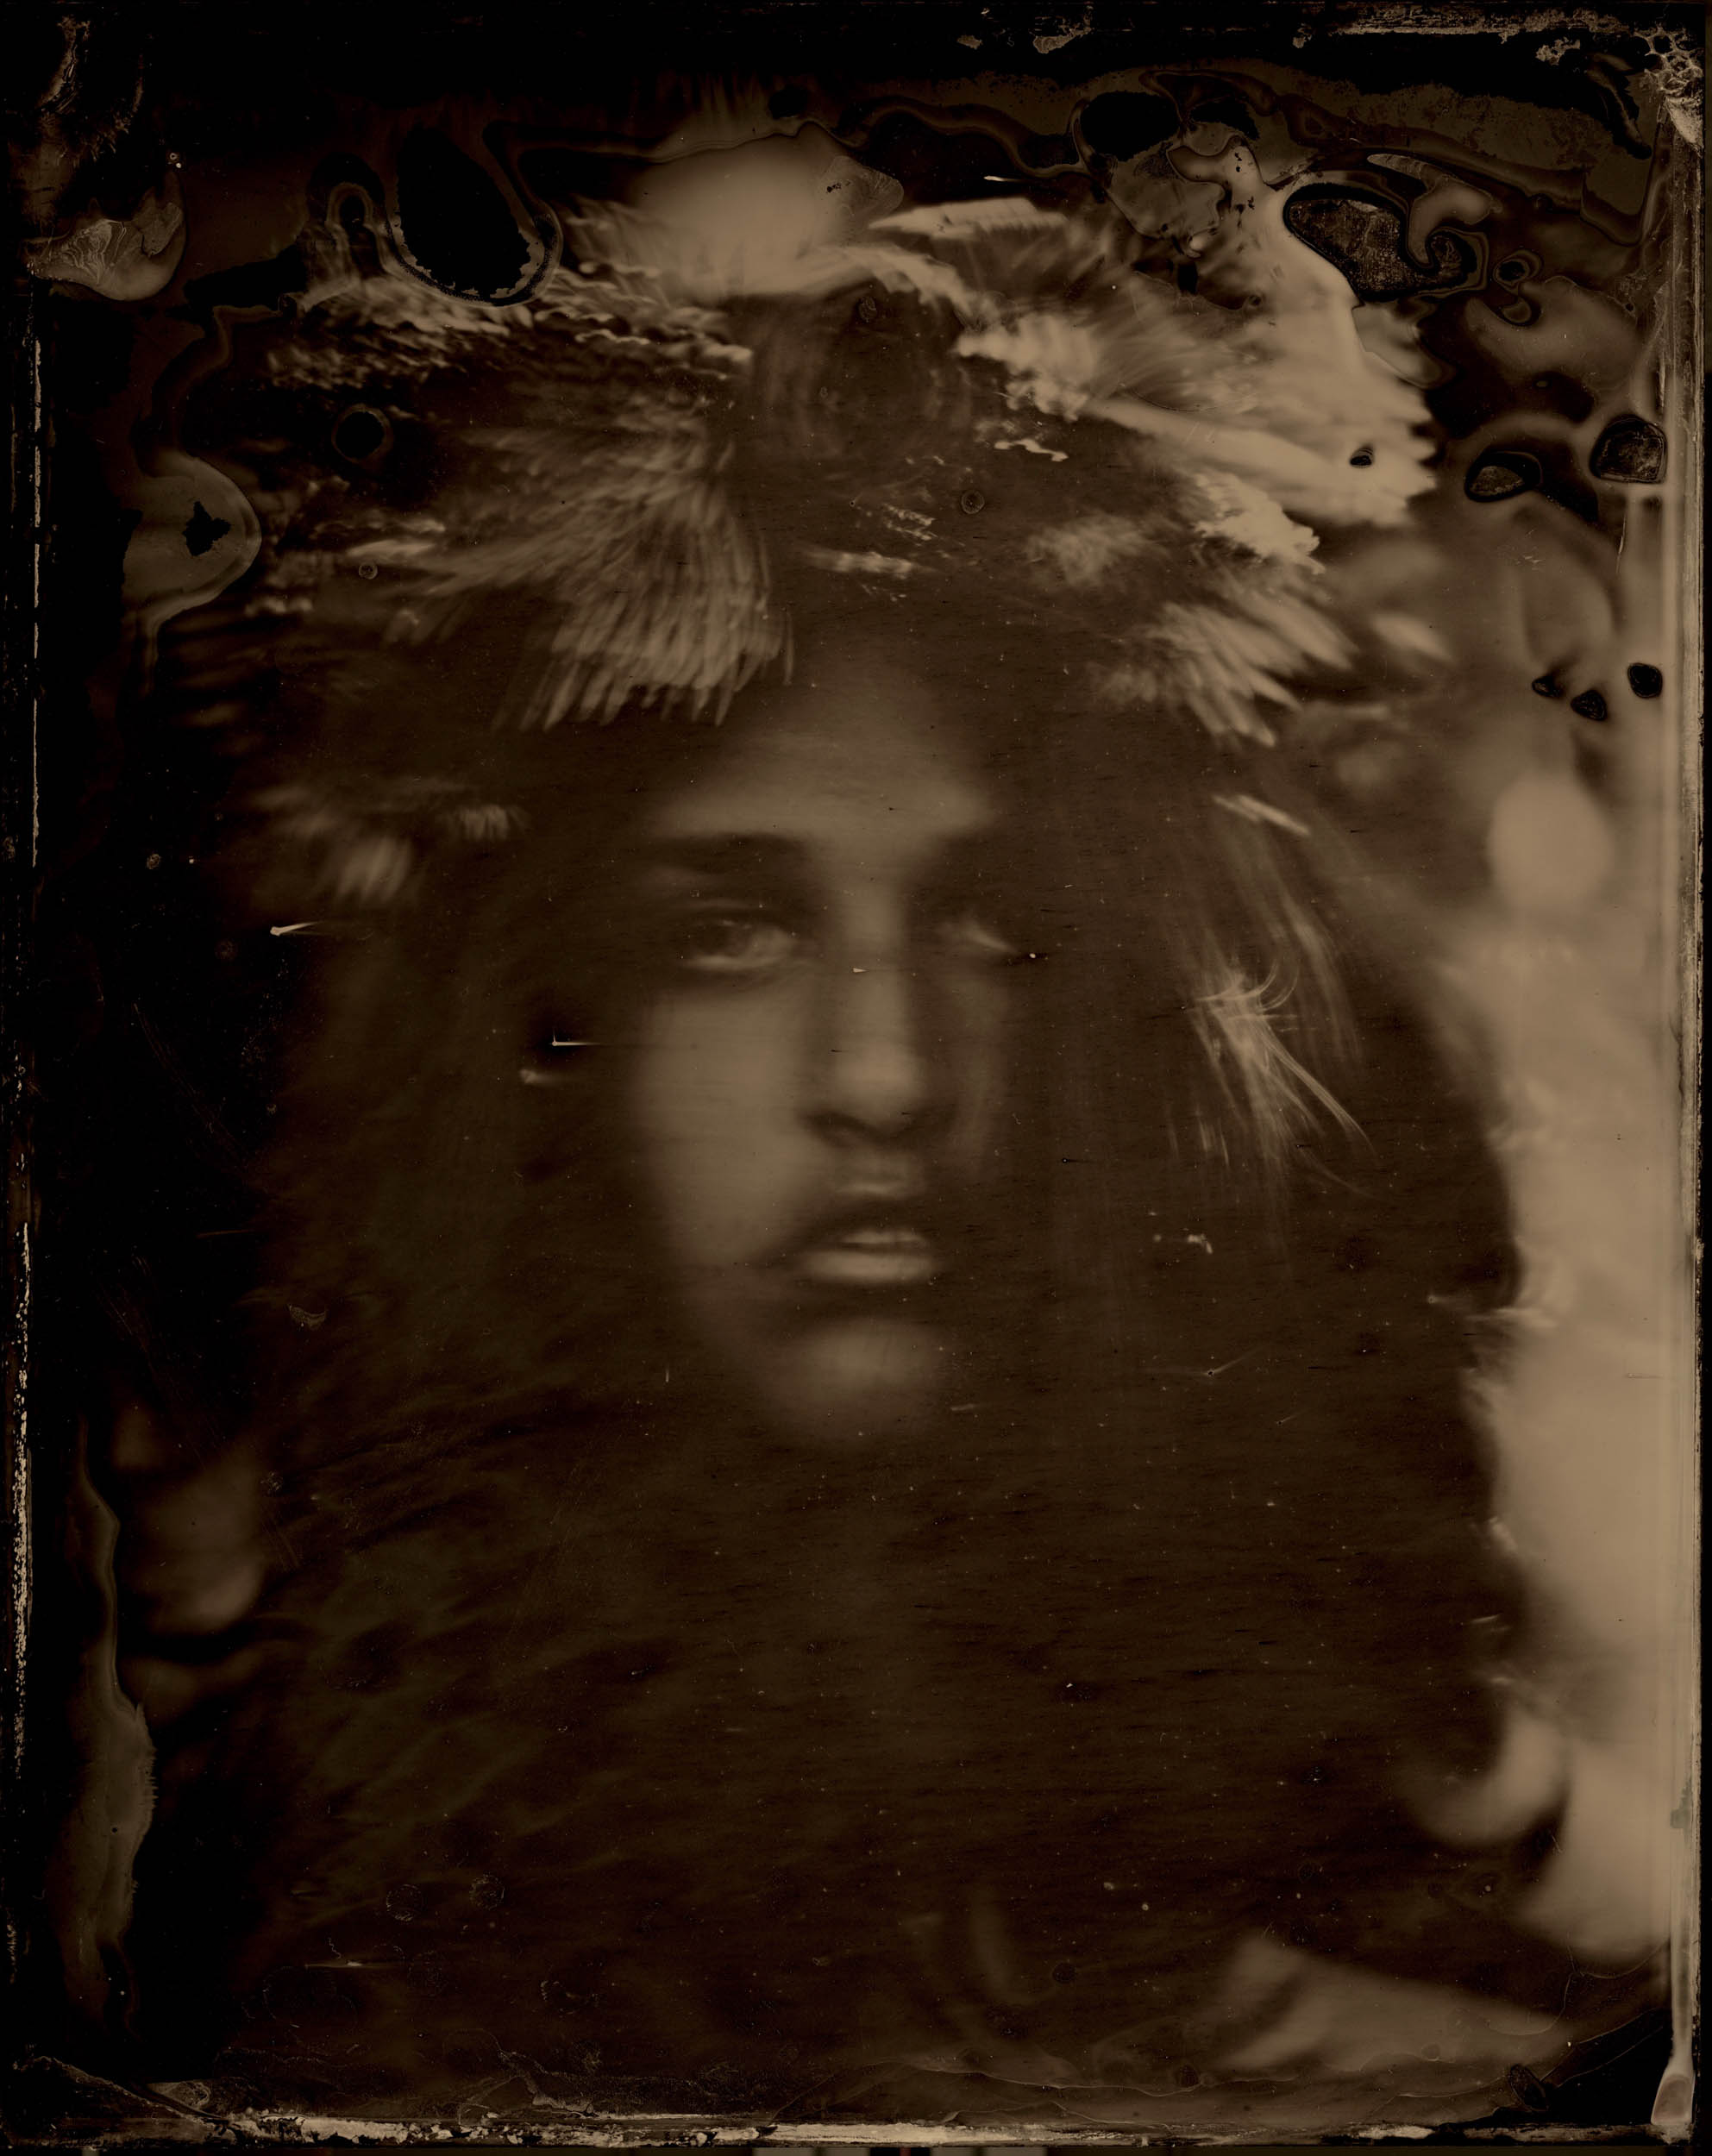 Stubborn Virtue, ambrotype original, archival pigment print, 40 in. x 50 in., 2018